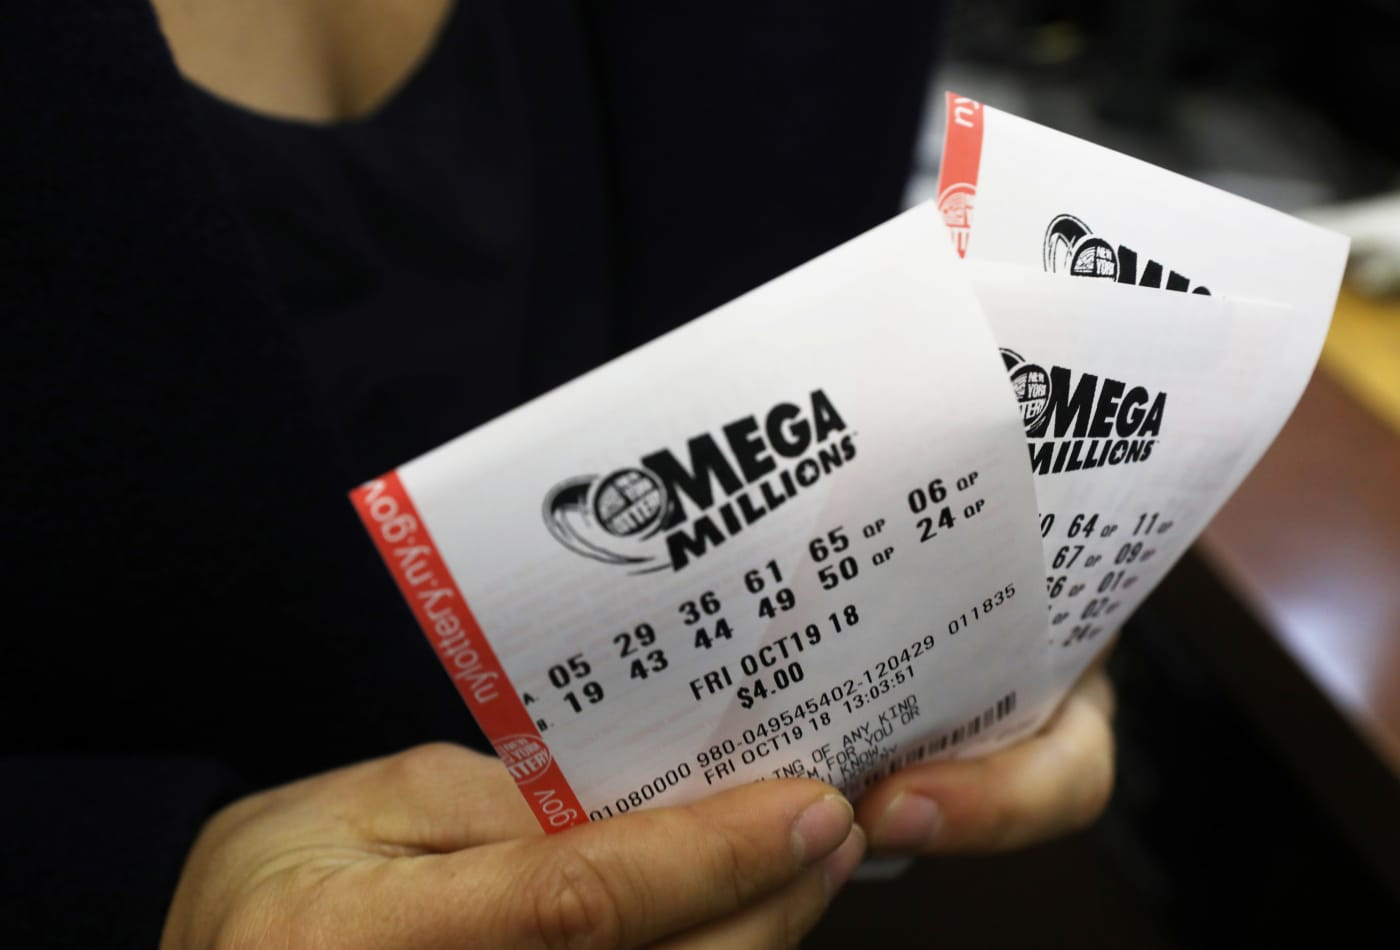 If you win the $314 million Mega Millions jackpot, here's what to do first to protect your windfall